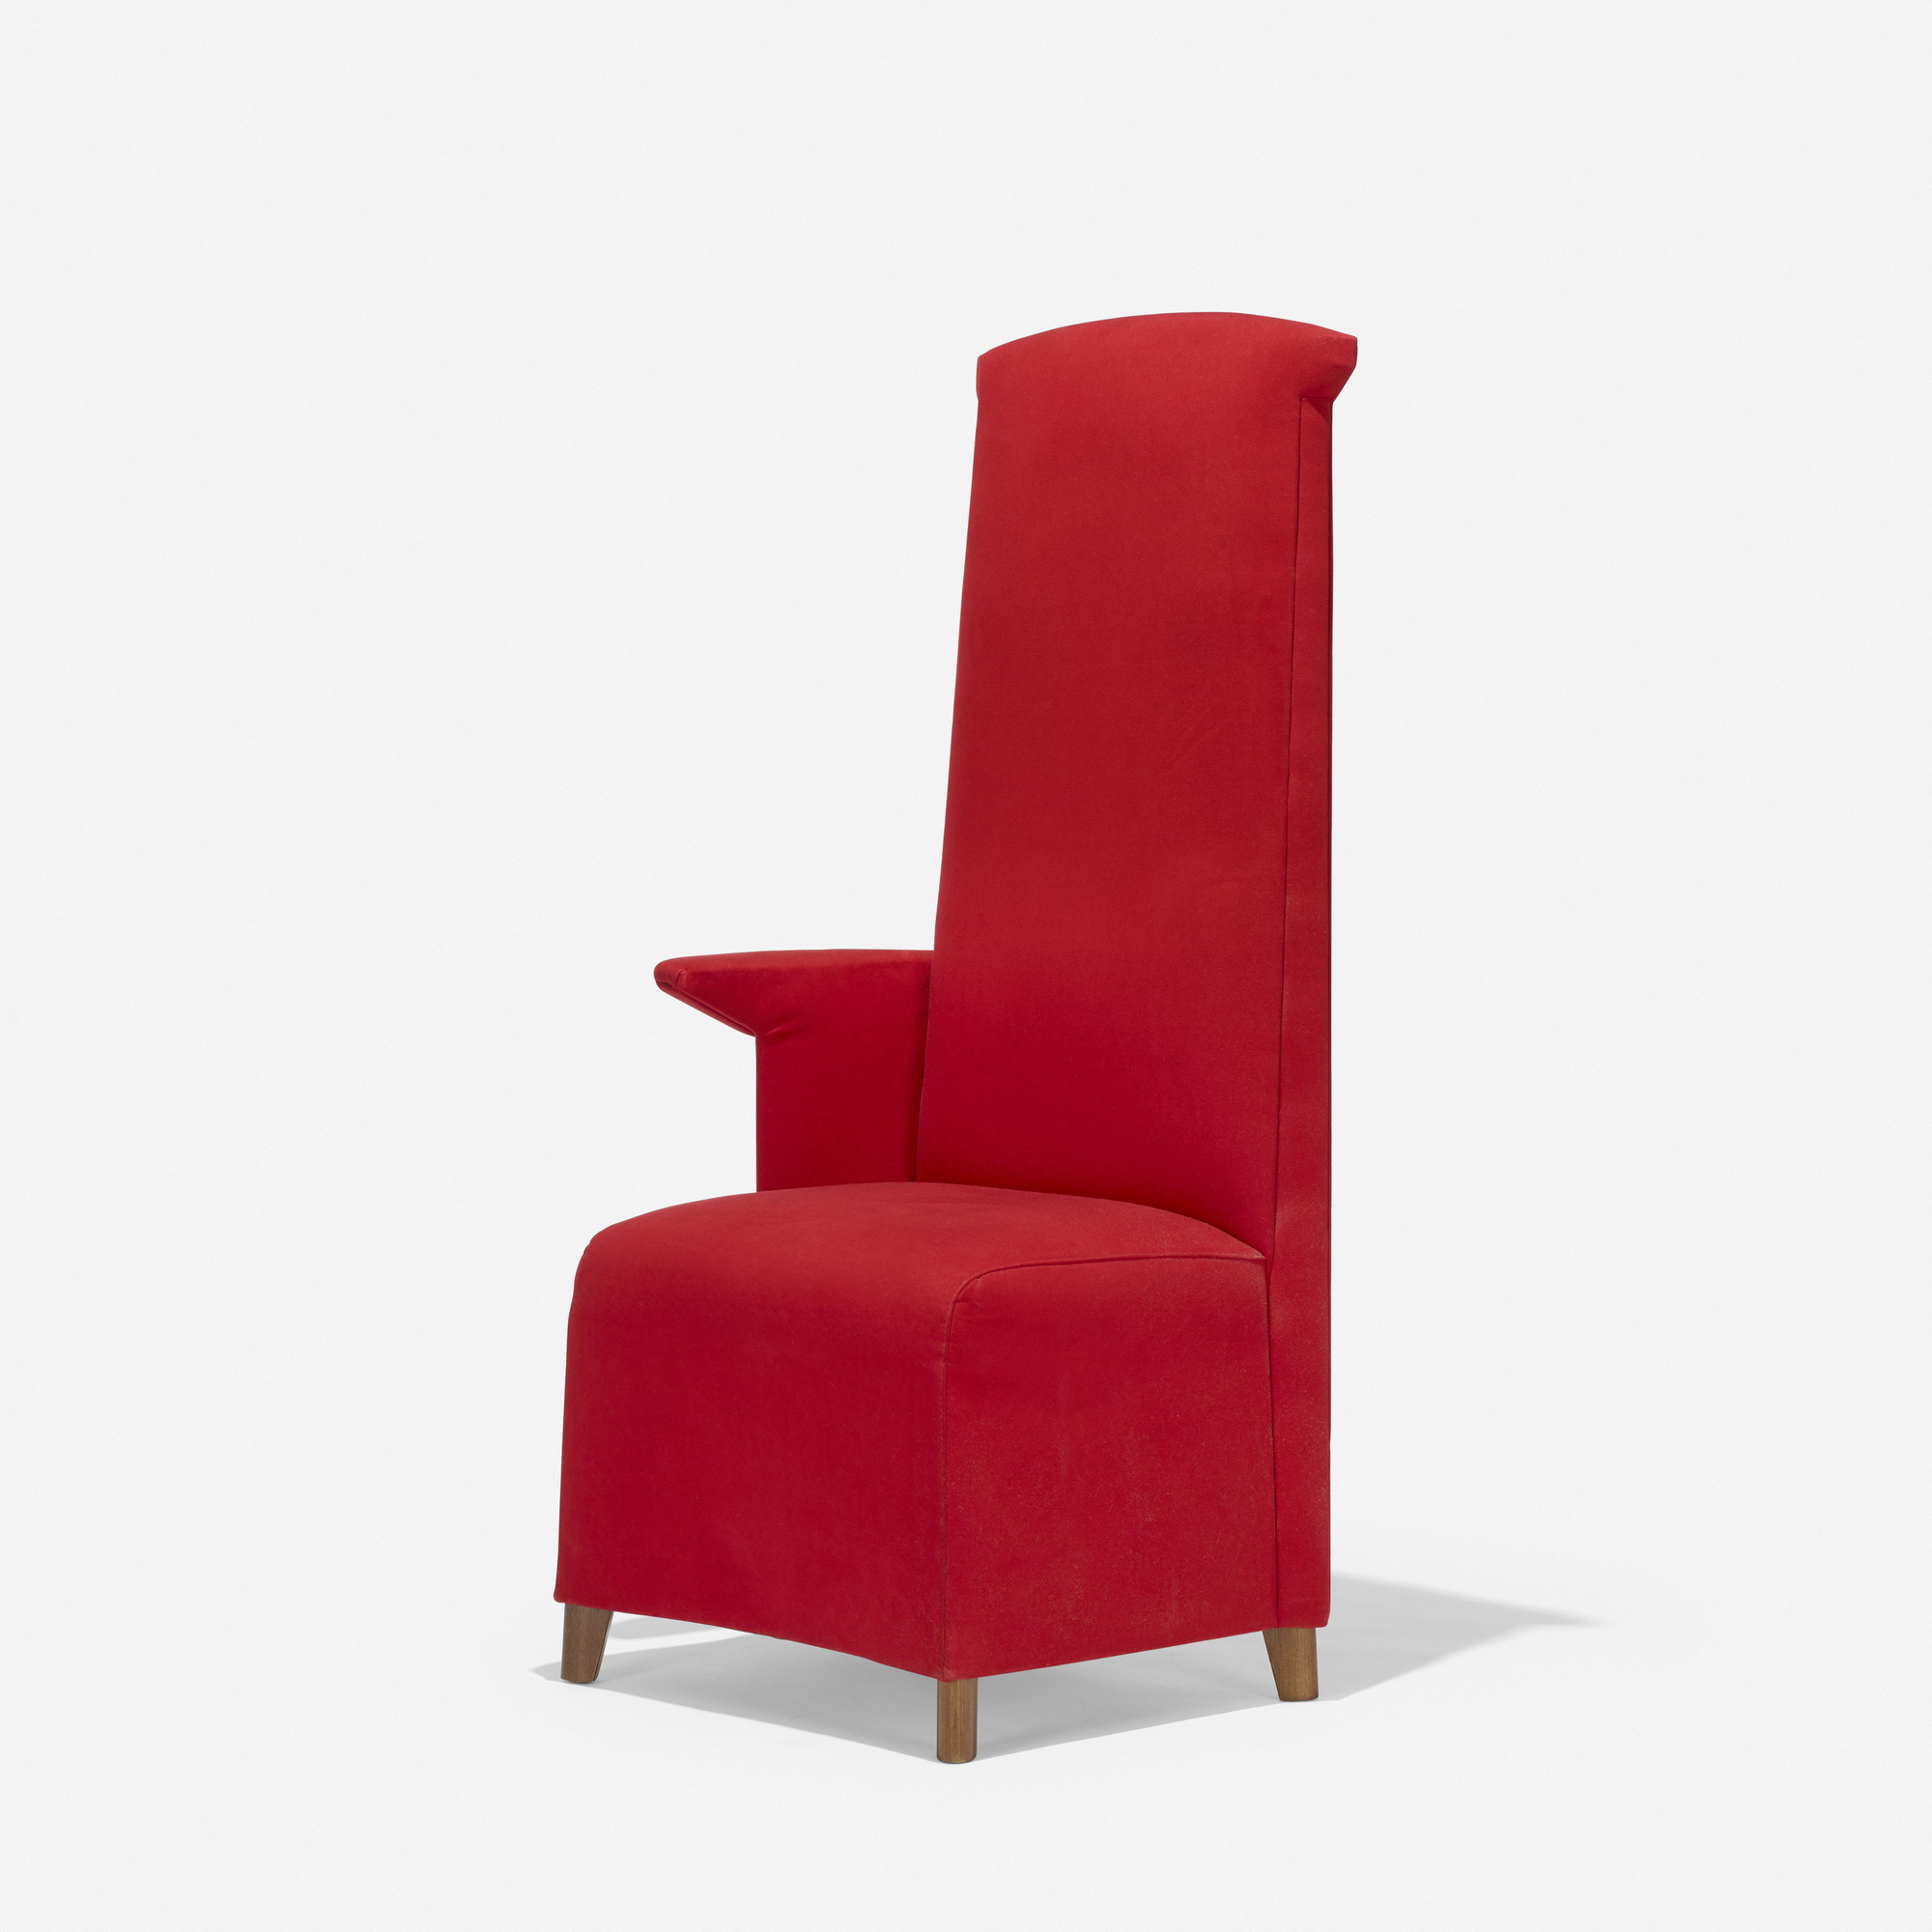 390: Lievore Altherr Molina / Manolete chair (1 of 3)